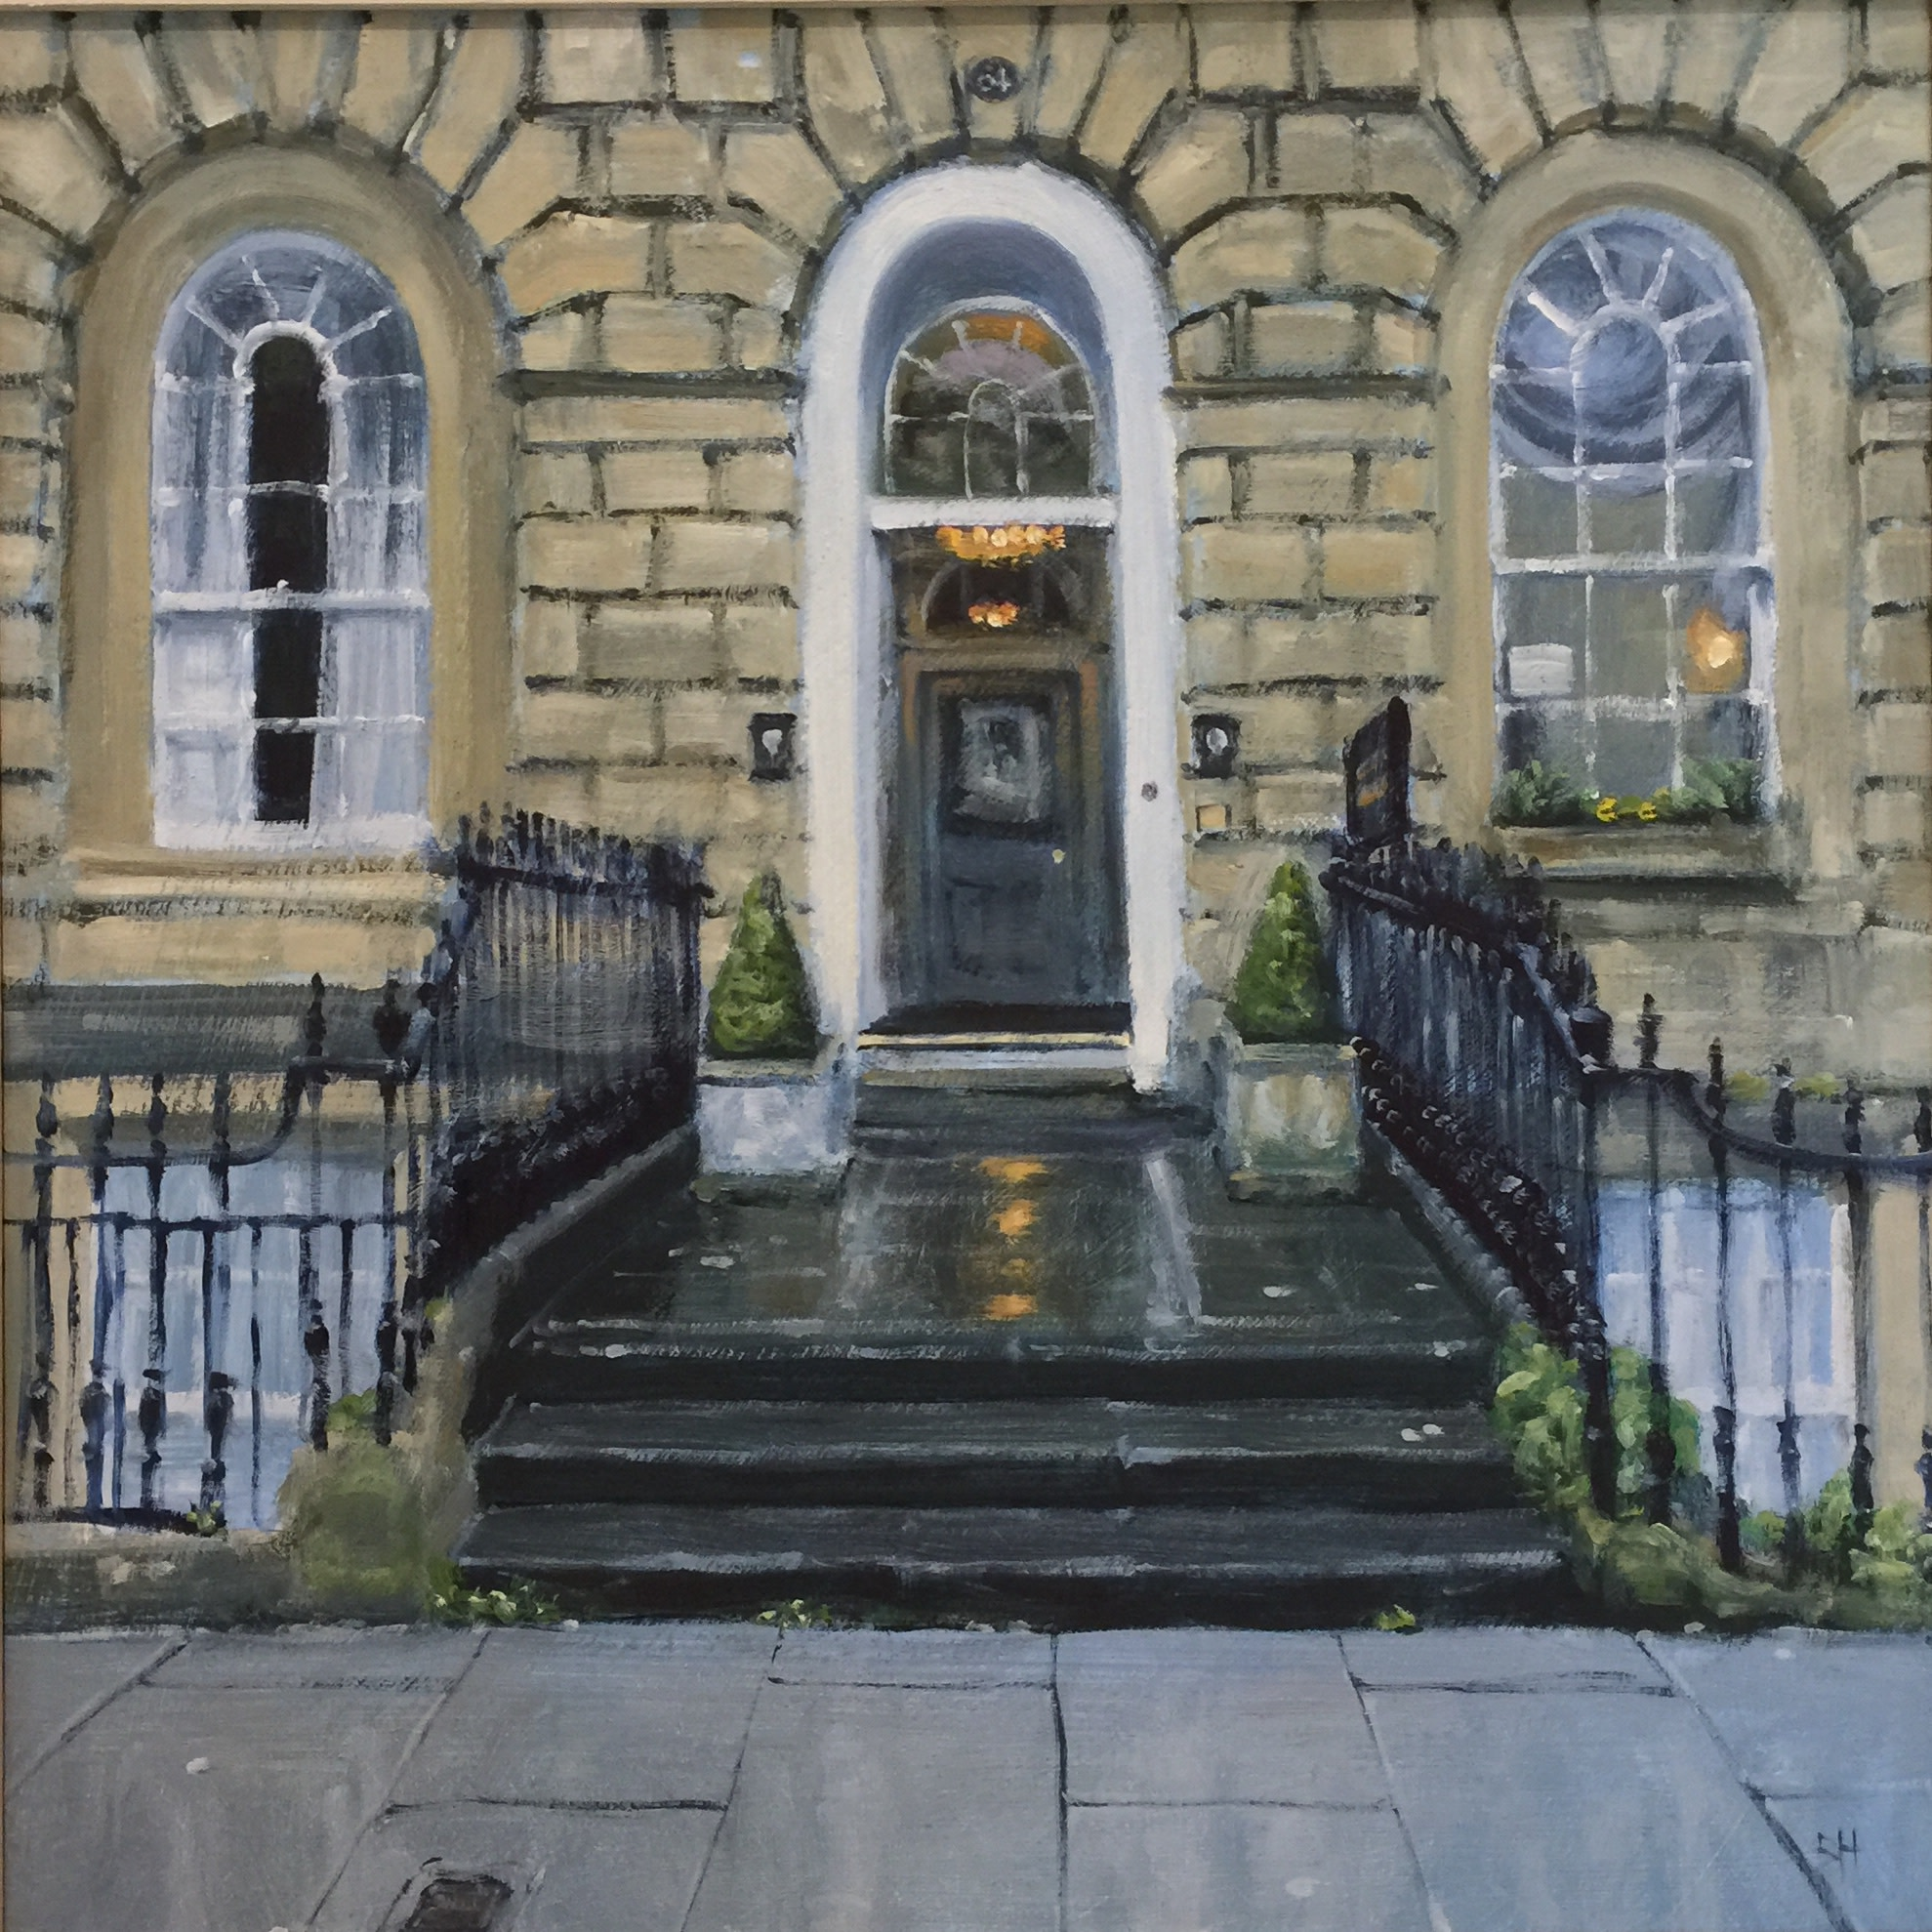 "<span class=""link fancybox-details-link""><a href=""/artists/181-ben-hughes/works/2774-ben-hughes-64-great-pulteney-street/"">View Detail Page</a></span><div class=""artist""><strong>Ben Hughes</strong></div> <div class=""title""><em>64, Great Pulteney Street </em></div> <div class=""medium"">Oil on Board</div> <div class=""dimensions"">30 x 30 cm </div><div class=""price"">£550.00</div><div class=""copyright_line"">Copyright The Artist</div>"